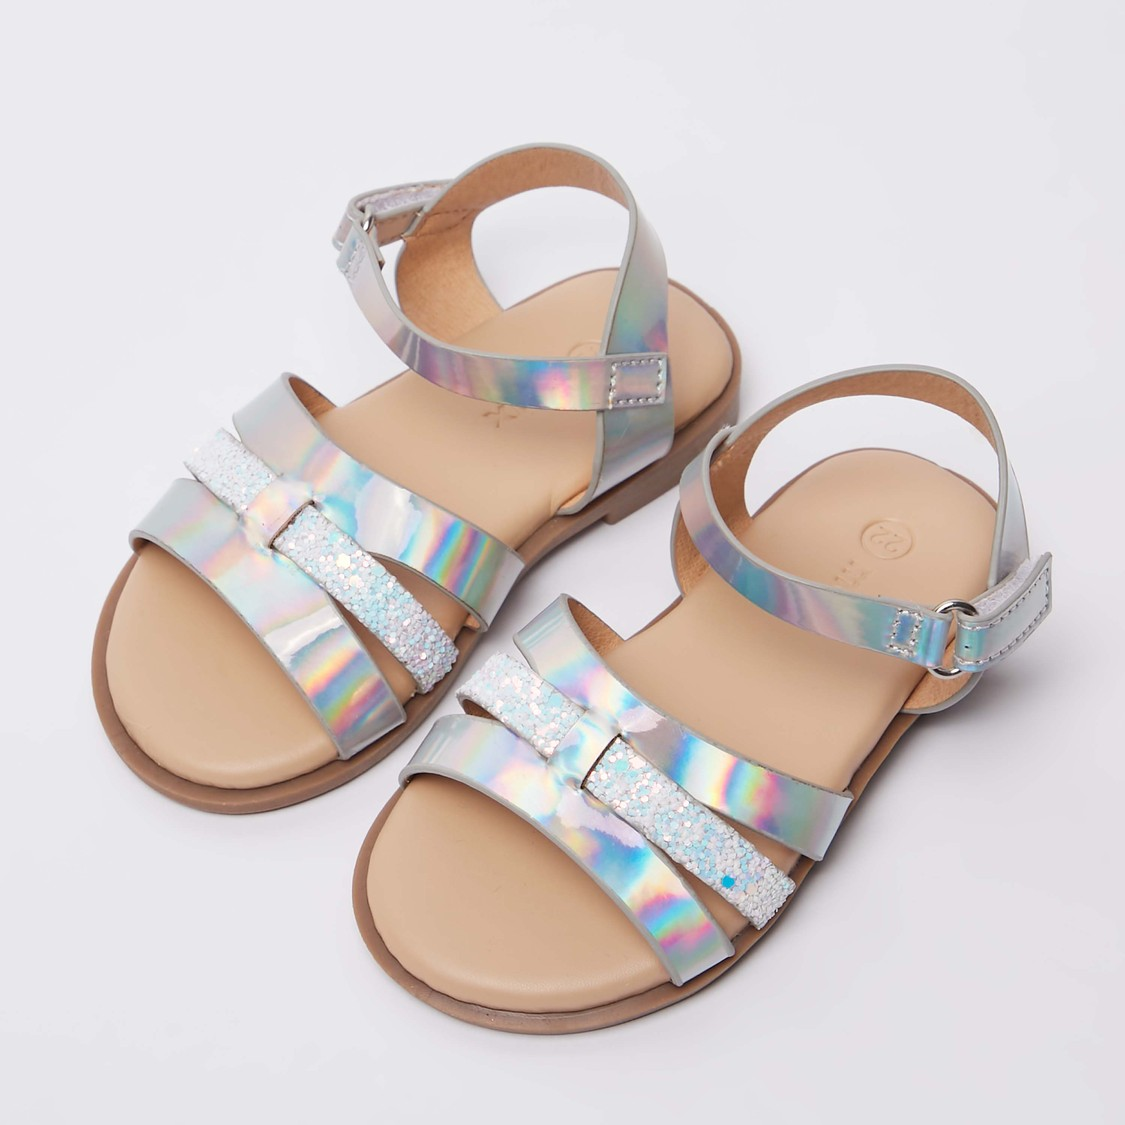 Glossy Strap Sandals with Hook and Loop Closure